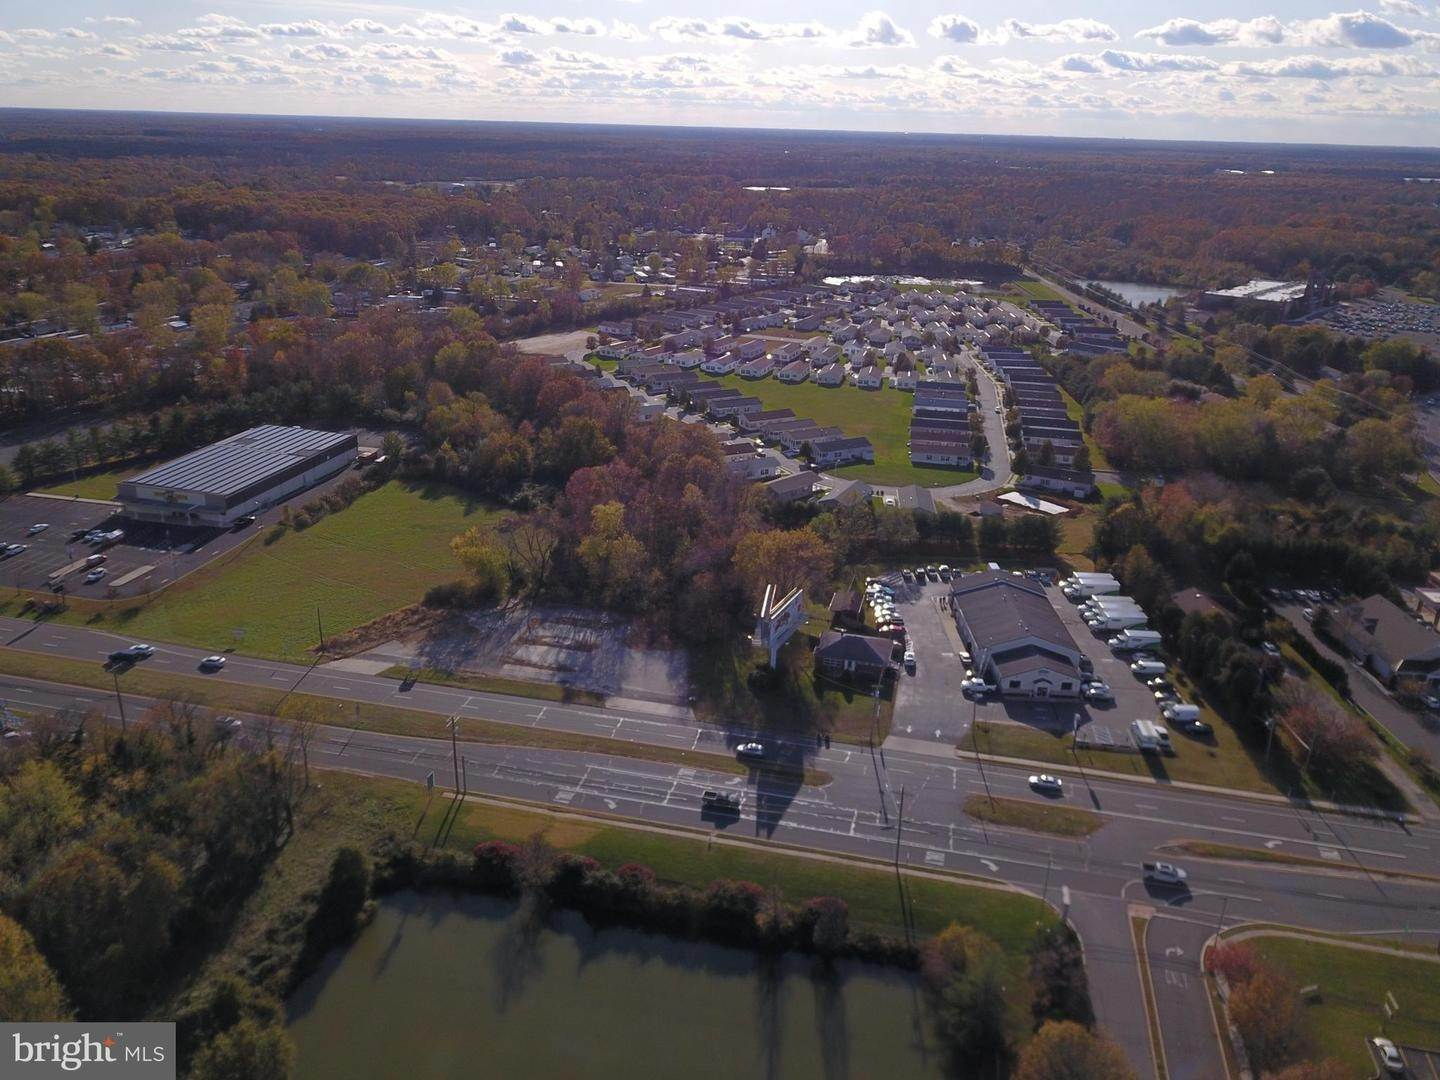 Property for Sale at Williamstown, New Jersey 08094 United States